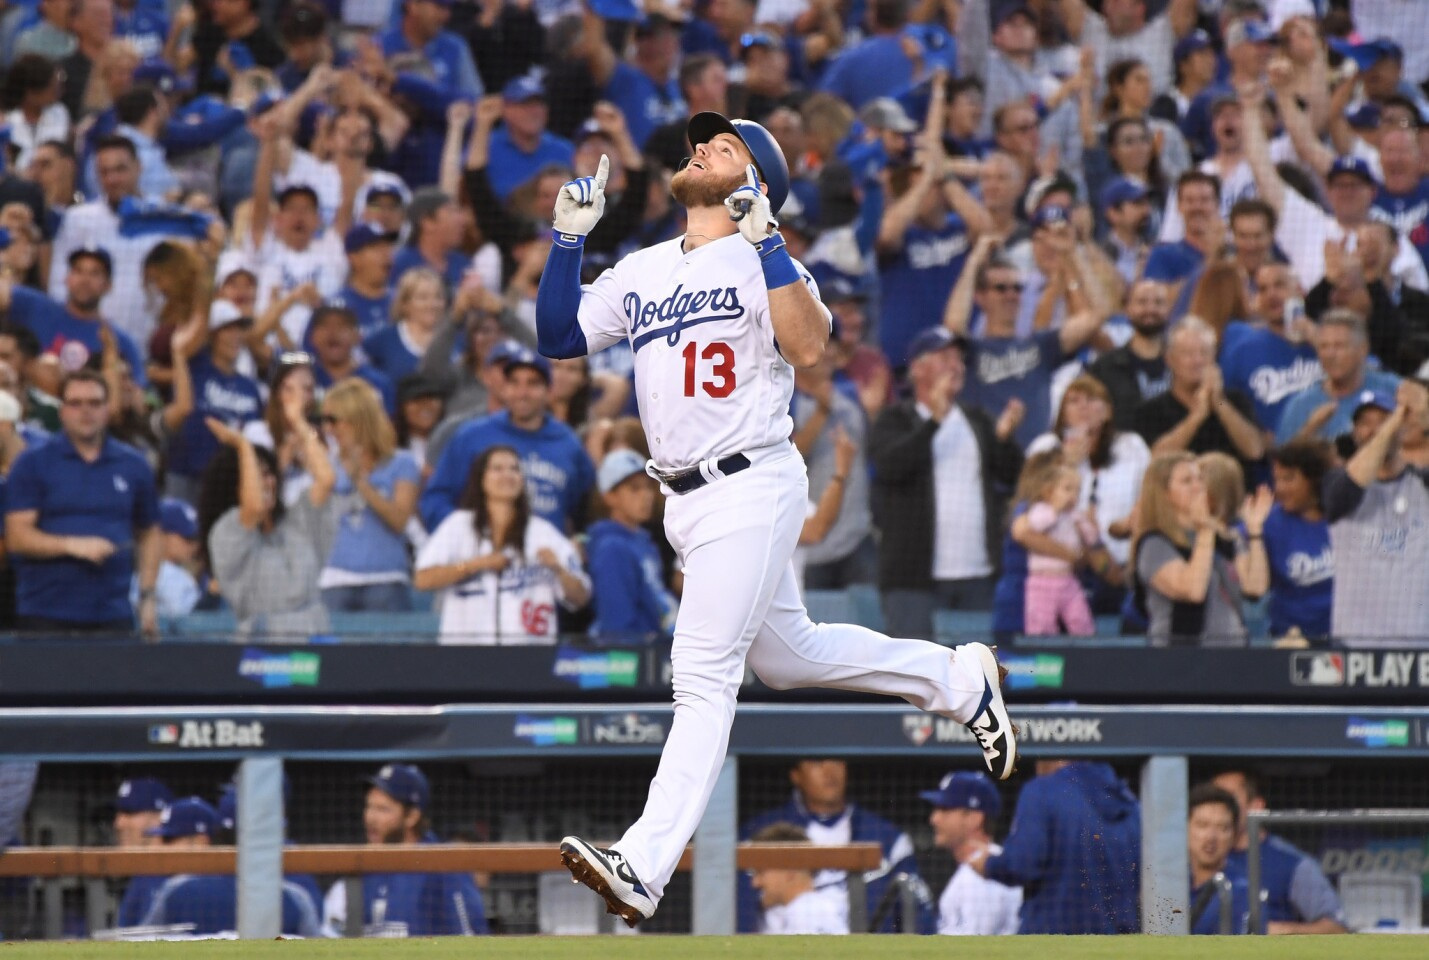 LOS ANGELES, OCTOBER 4, 2018-Dodgers Max Muncy celebrates his three-run home run against the Braves in the 2nd inning in Game 1 of the NLDS at Dodger Stadium Thursday. (Wally Skalij/Los Angeles Times)